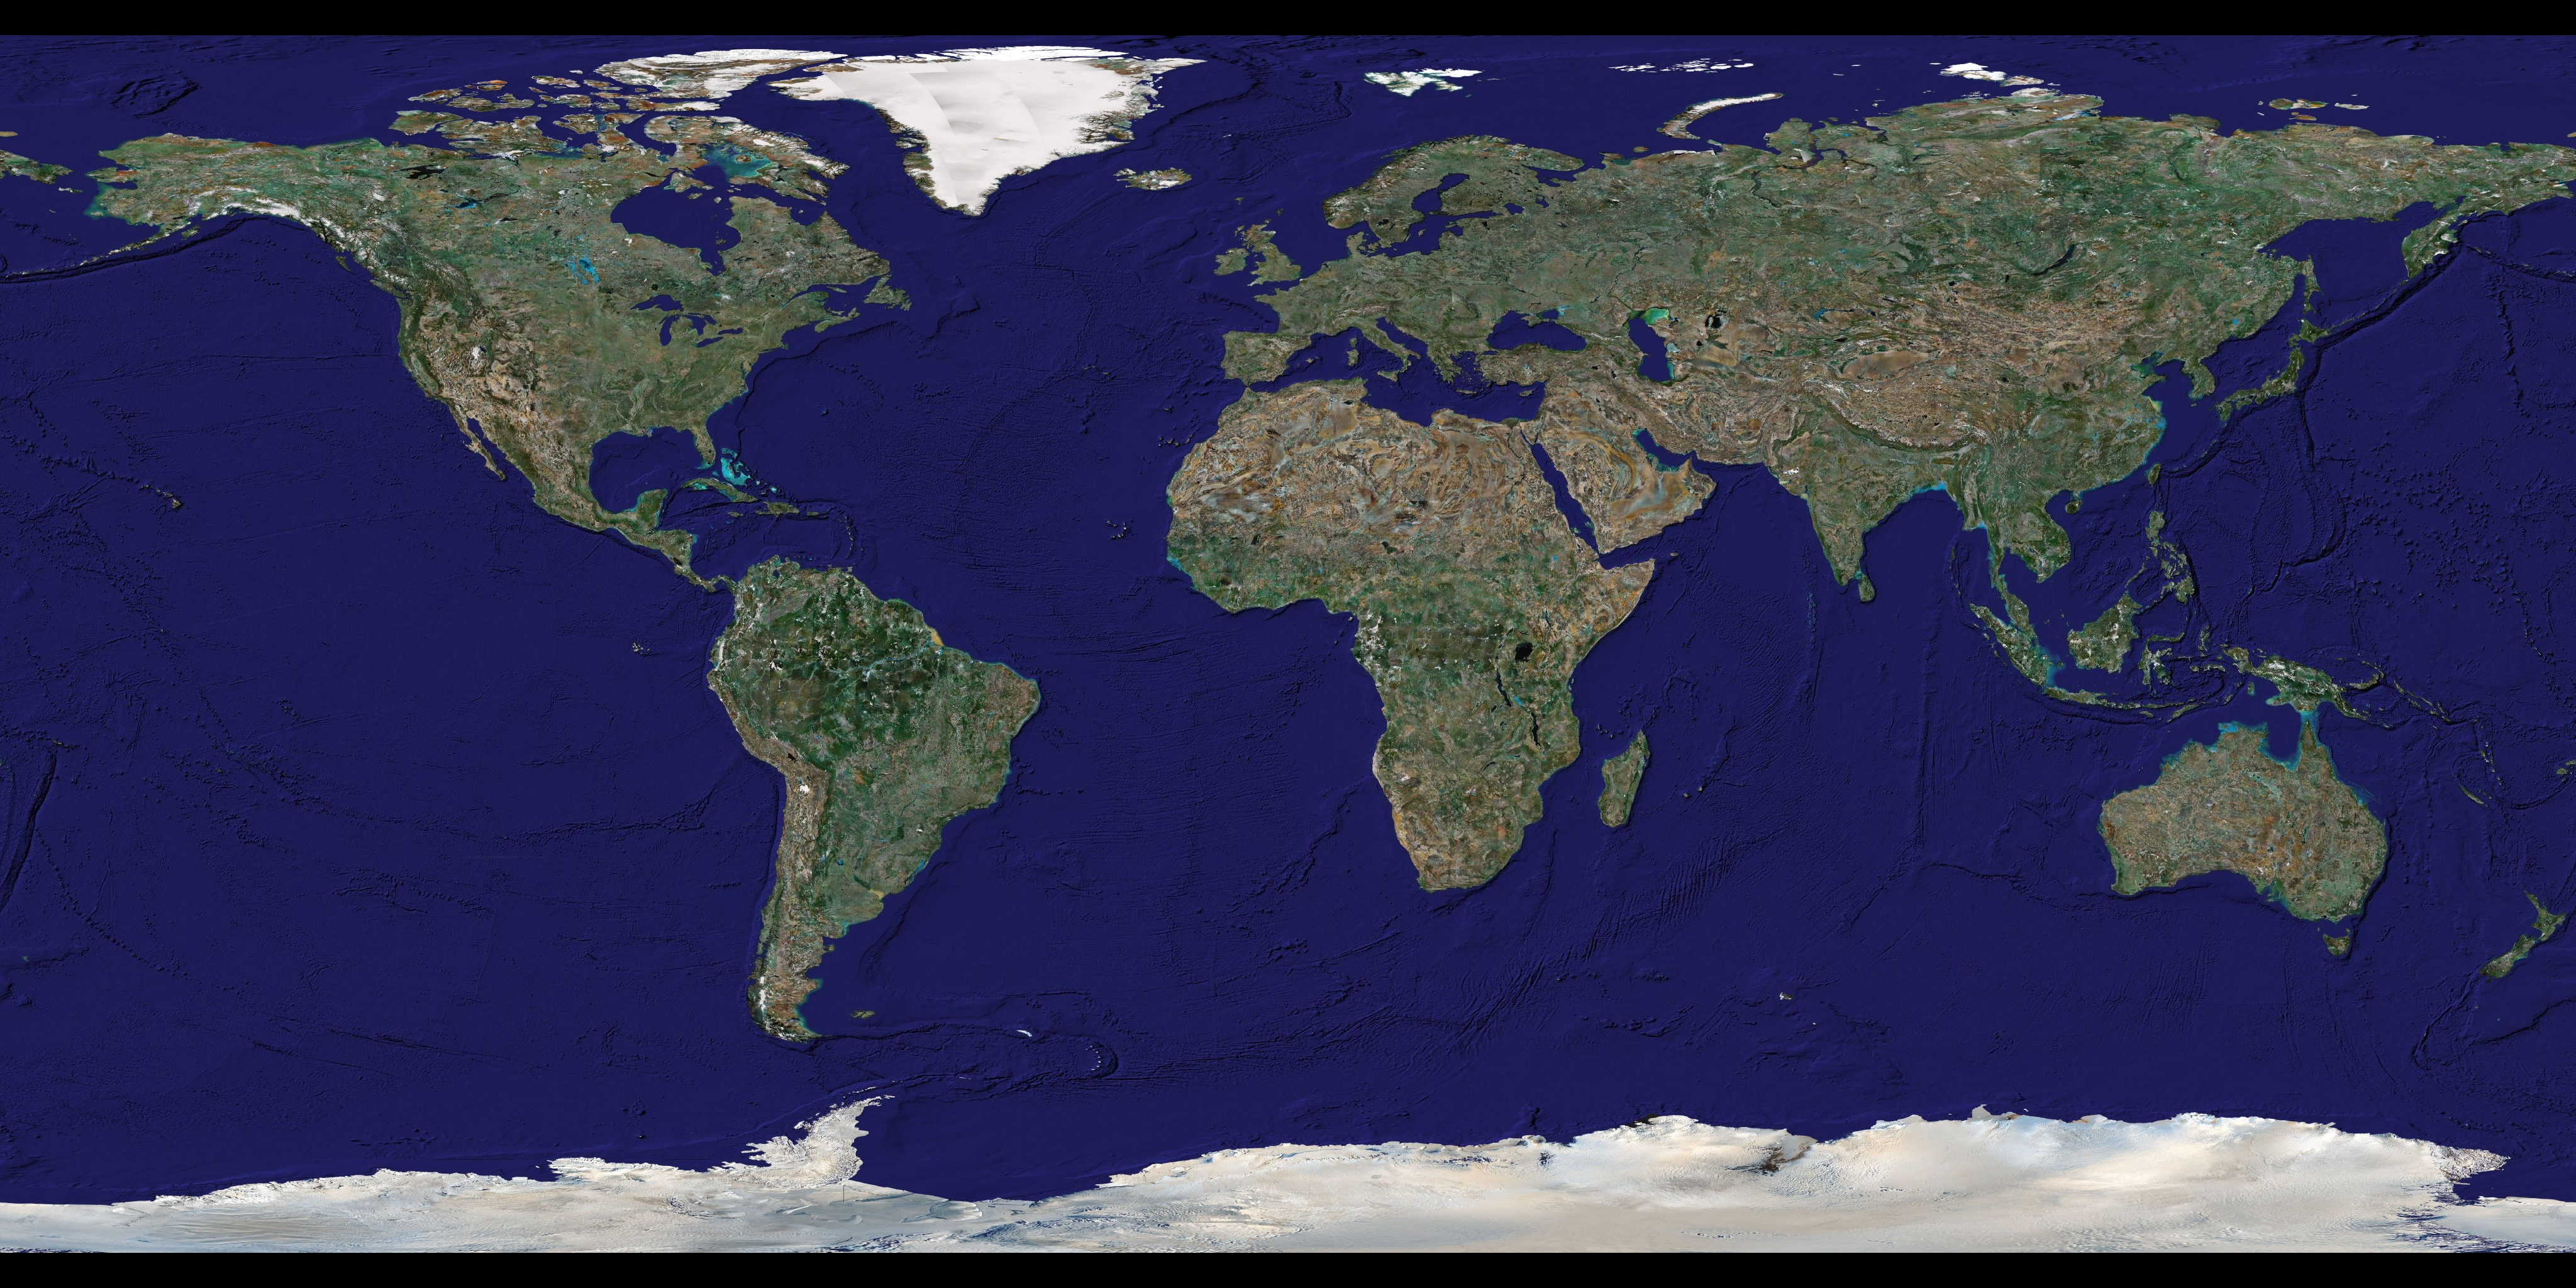 571 nasa earth maps - photo #19